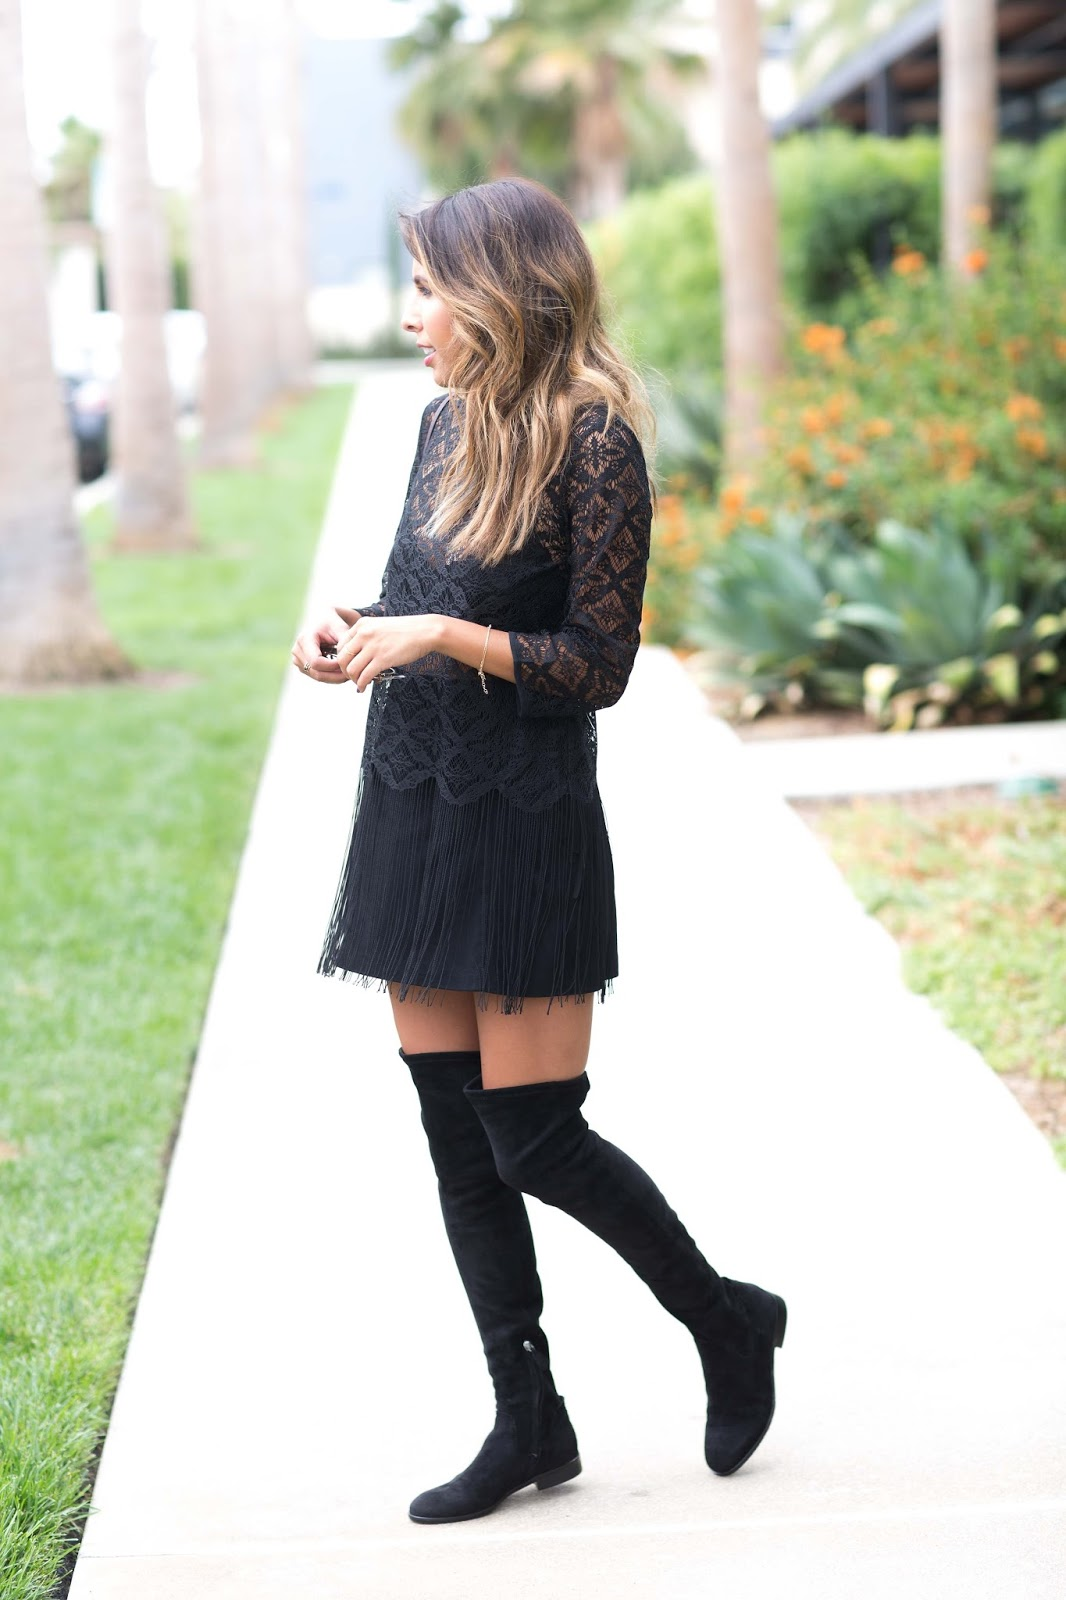 how to style OTK boots, Dolce Vita OTK black boots, How to wear OTK boots with Skirts